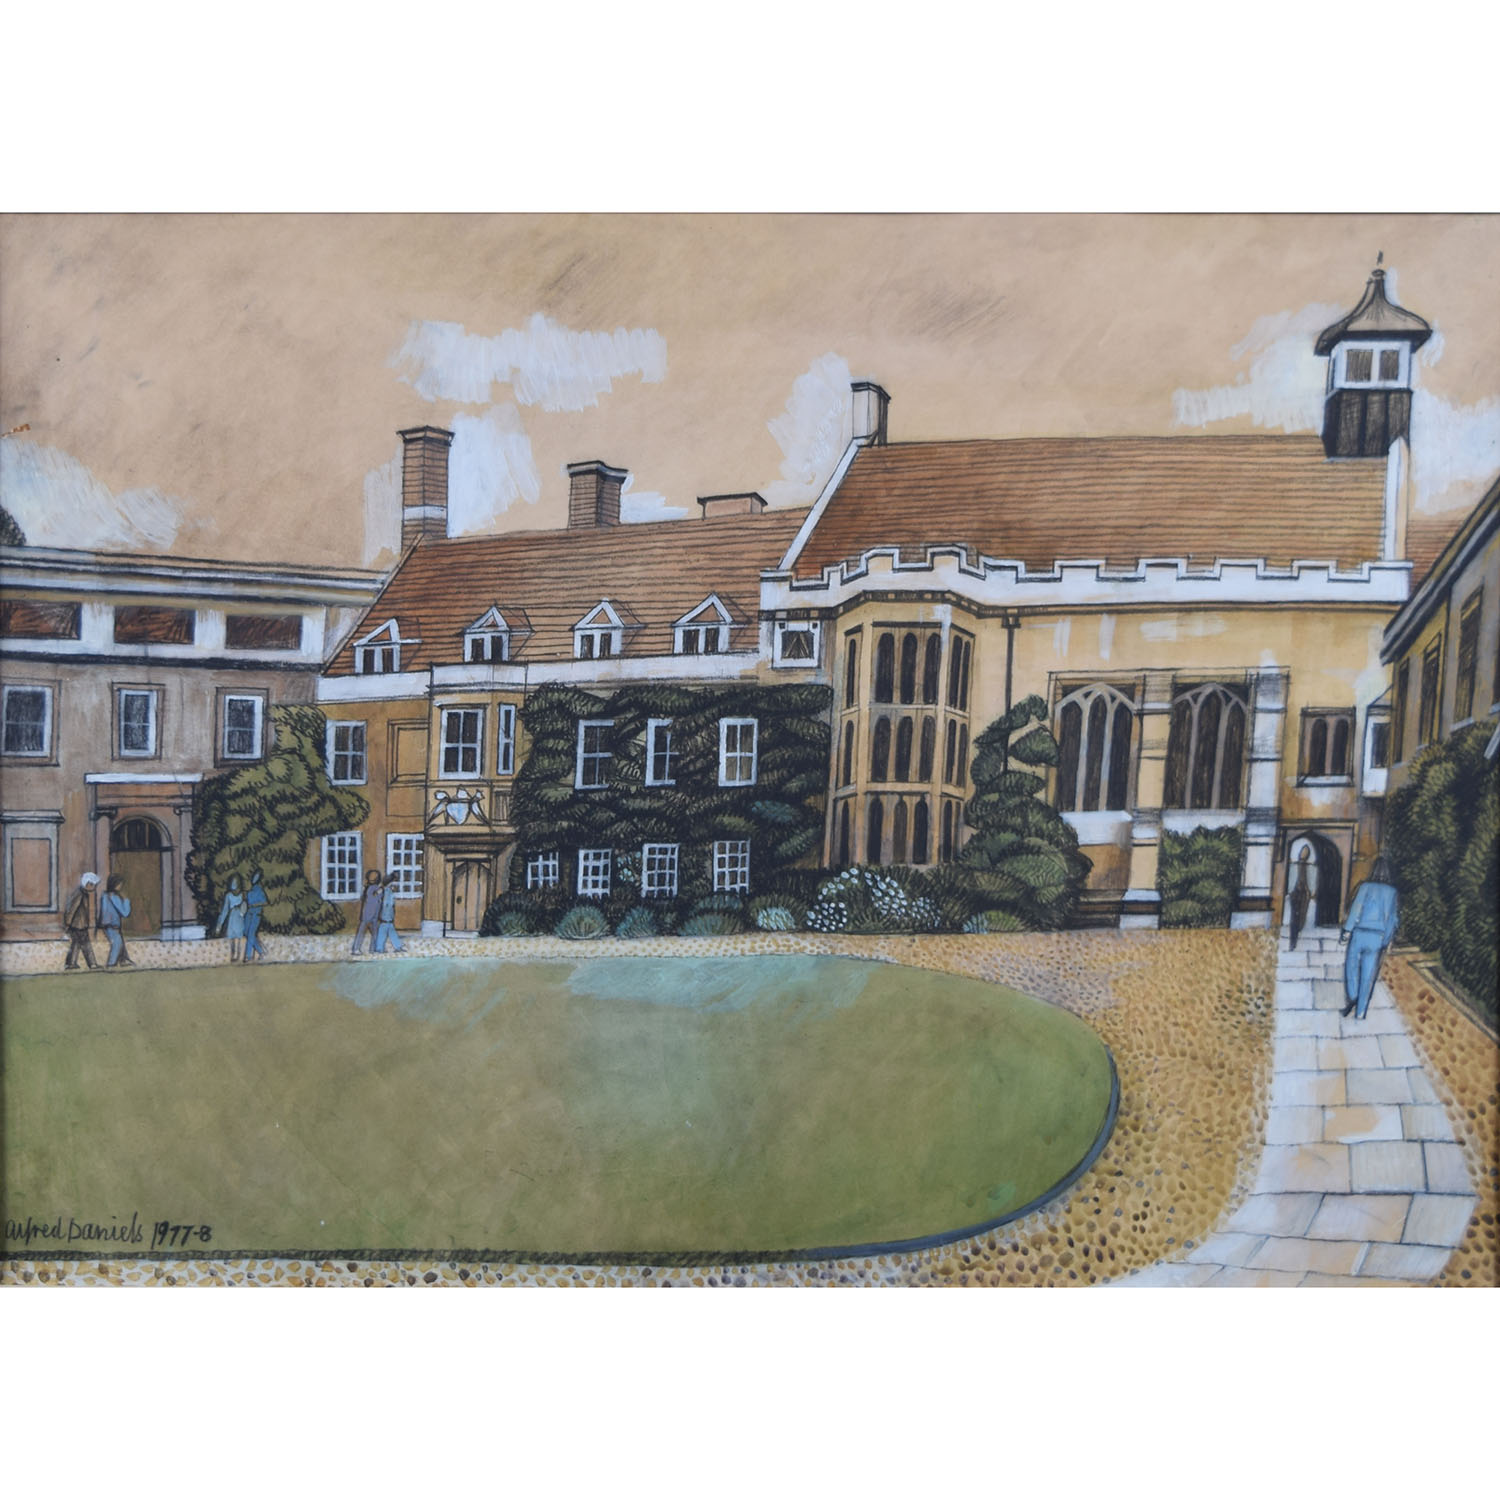 Alfred Daniels Christ's College CambridgeAlfred Daniels Christ's College Cambridge